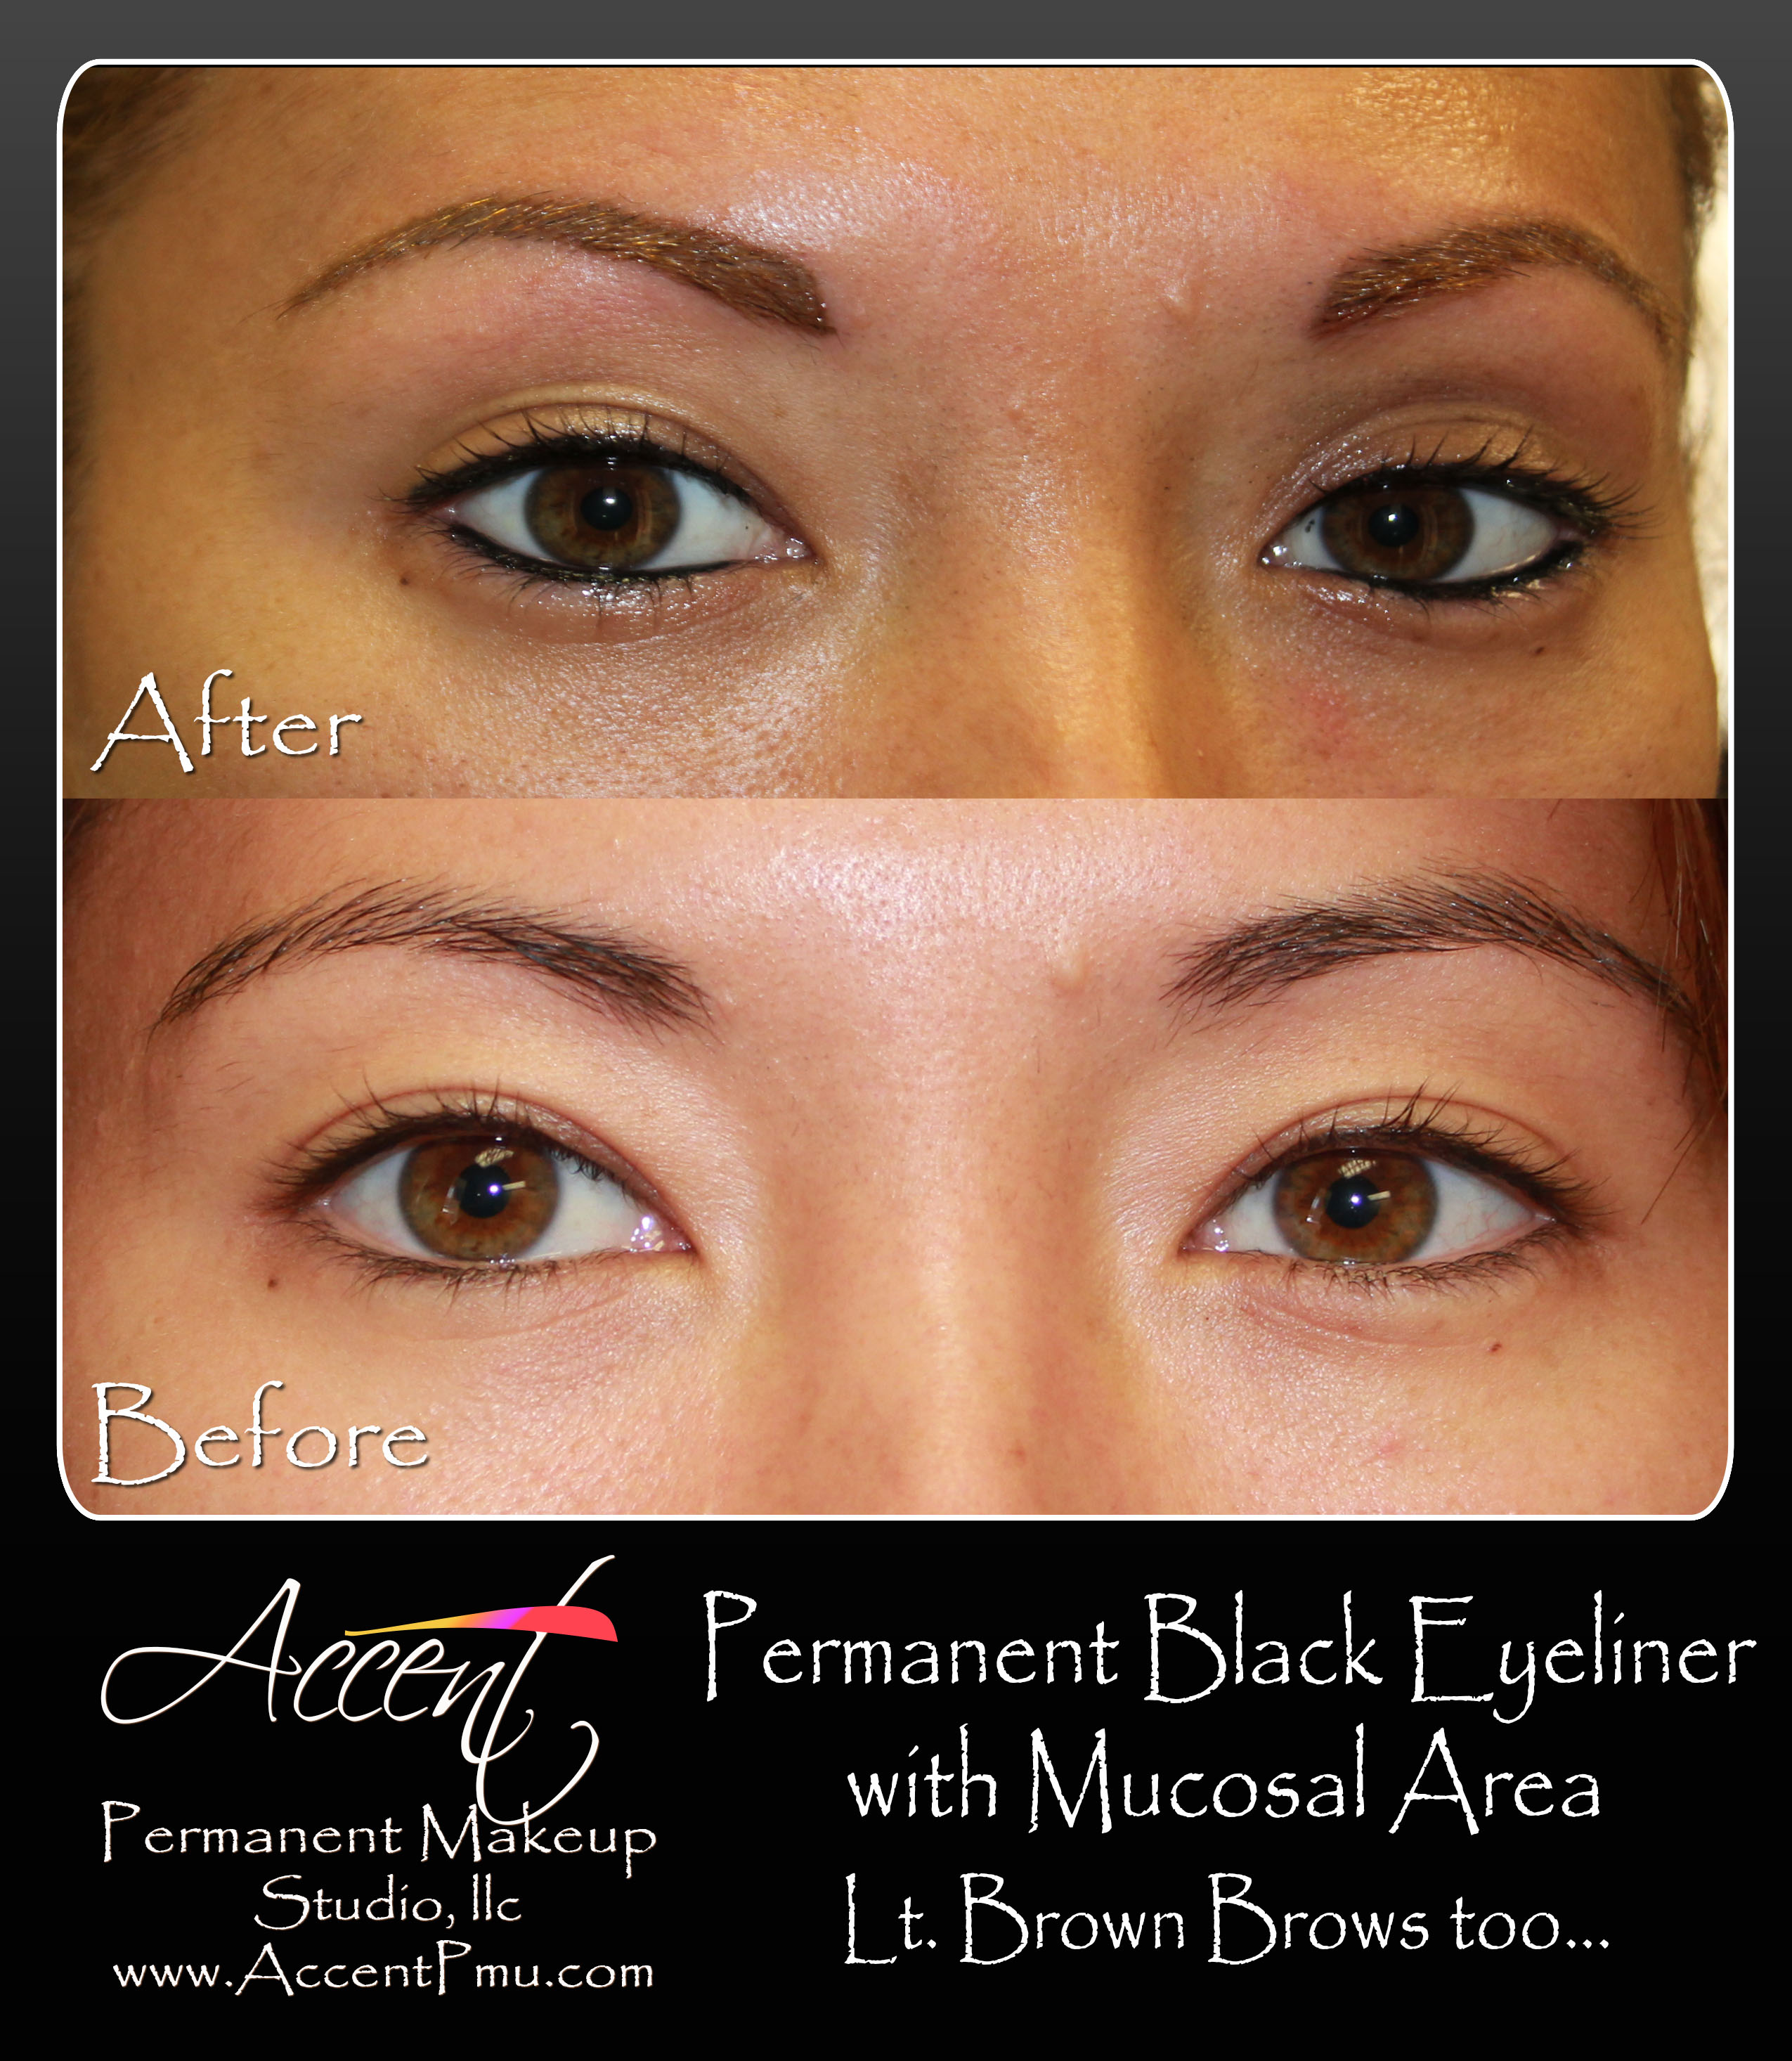 Accent Permanent Maekup Eyebrows